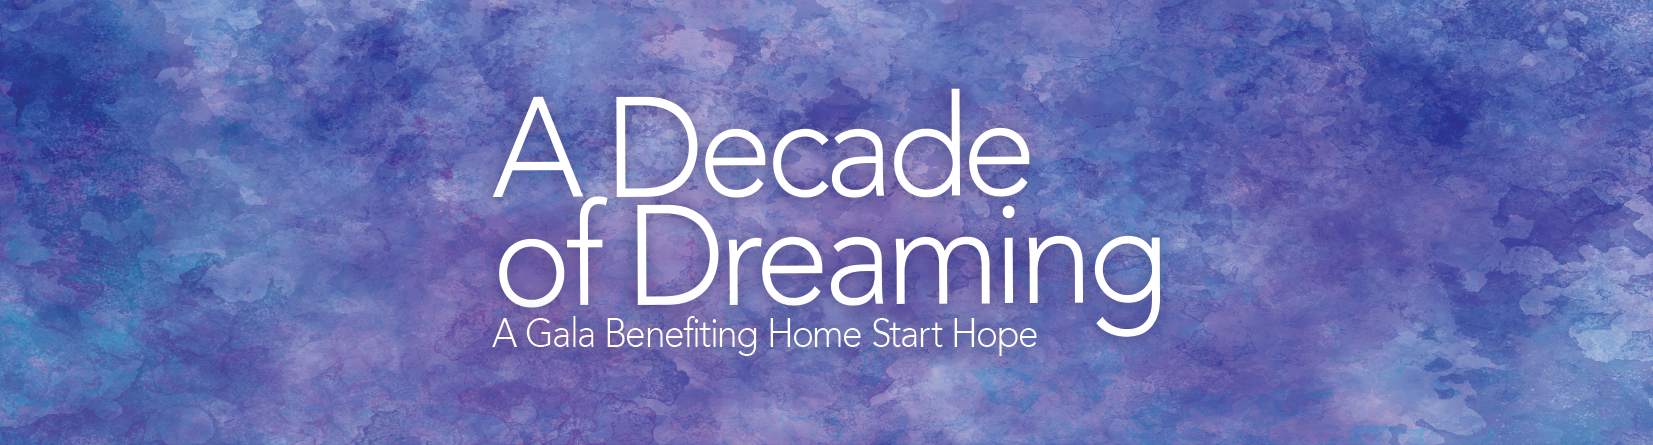 A Decade of Dreaming